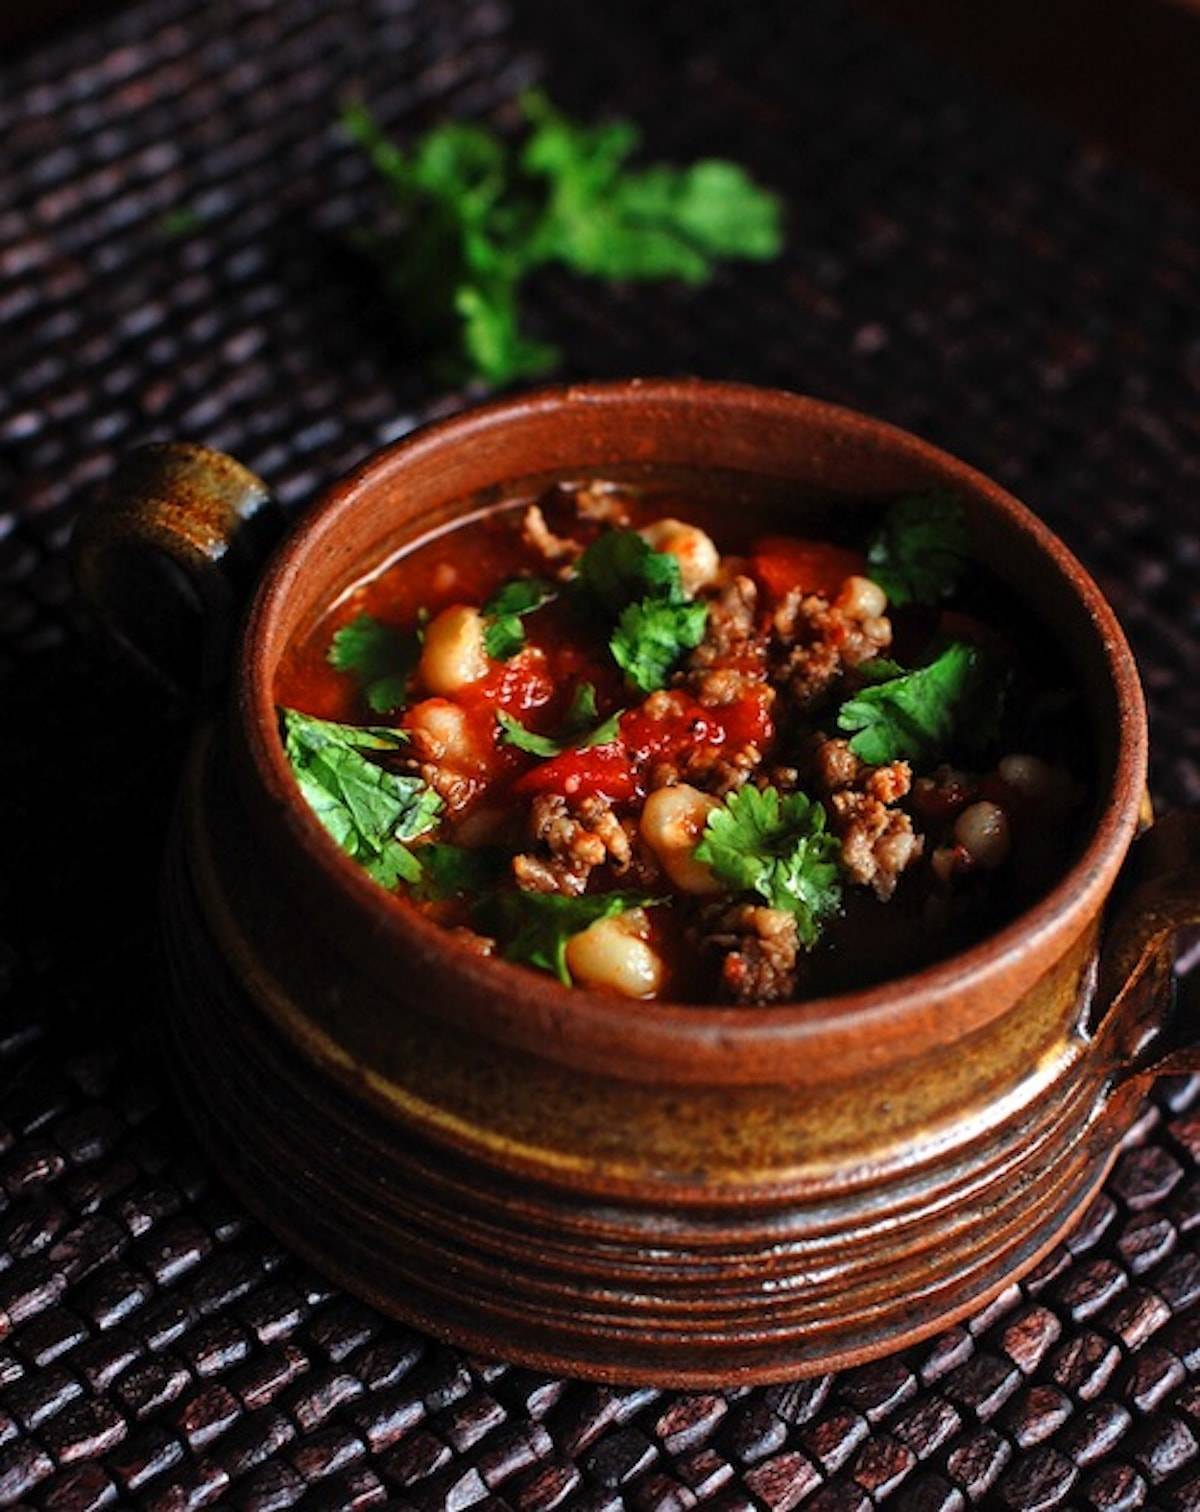 Spicy sausage posole in a unique bowl with herb topping.